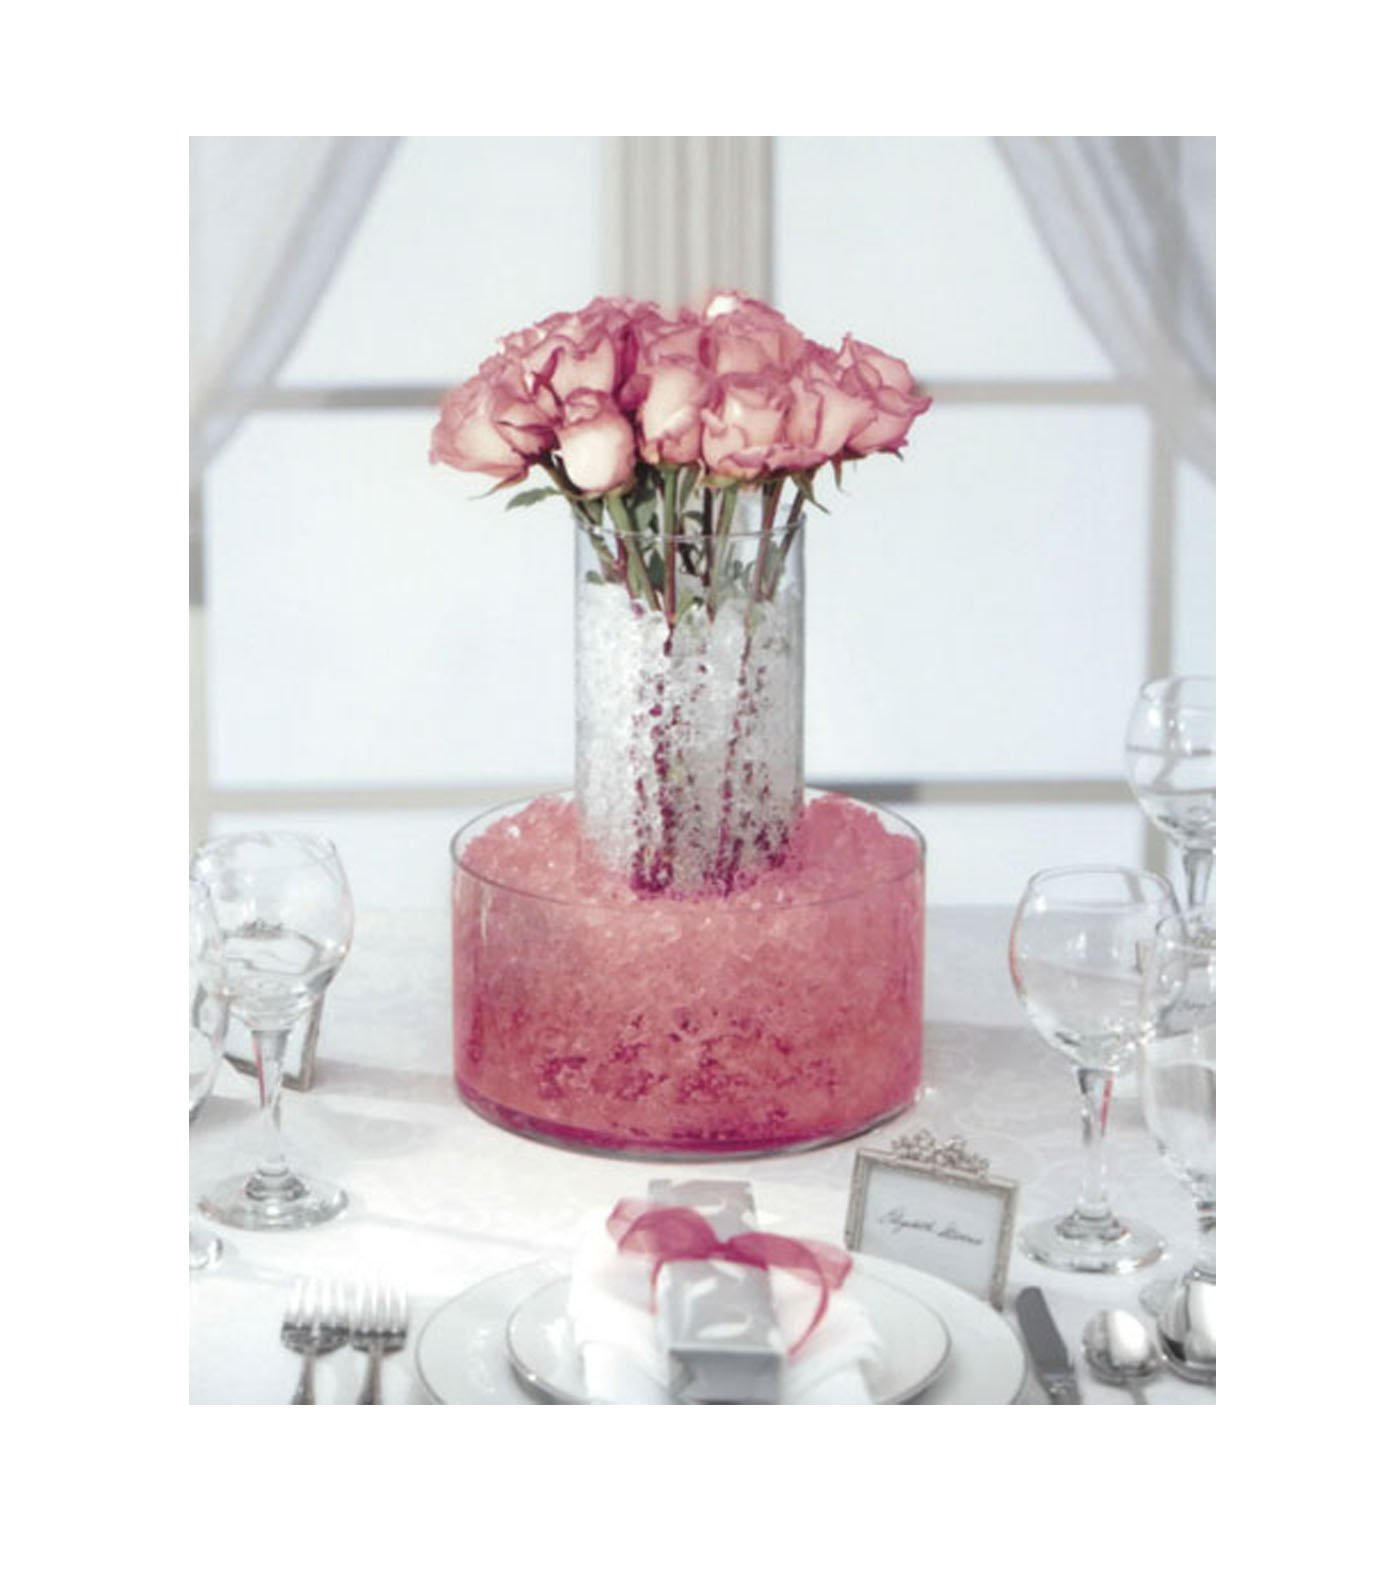 10pk of 14 Gram Packs Each - Crystal Accents Cracked Ice Vase Filler- Use for Weddings, Parties, Events, & Everyday Florals & Decorations (Crystal Rose)